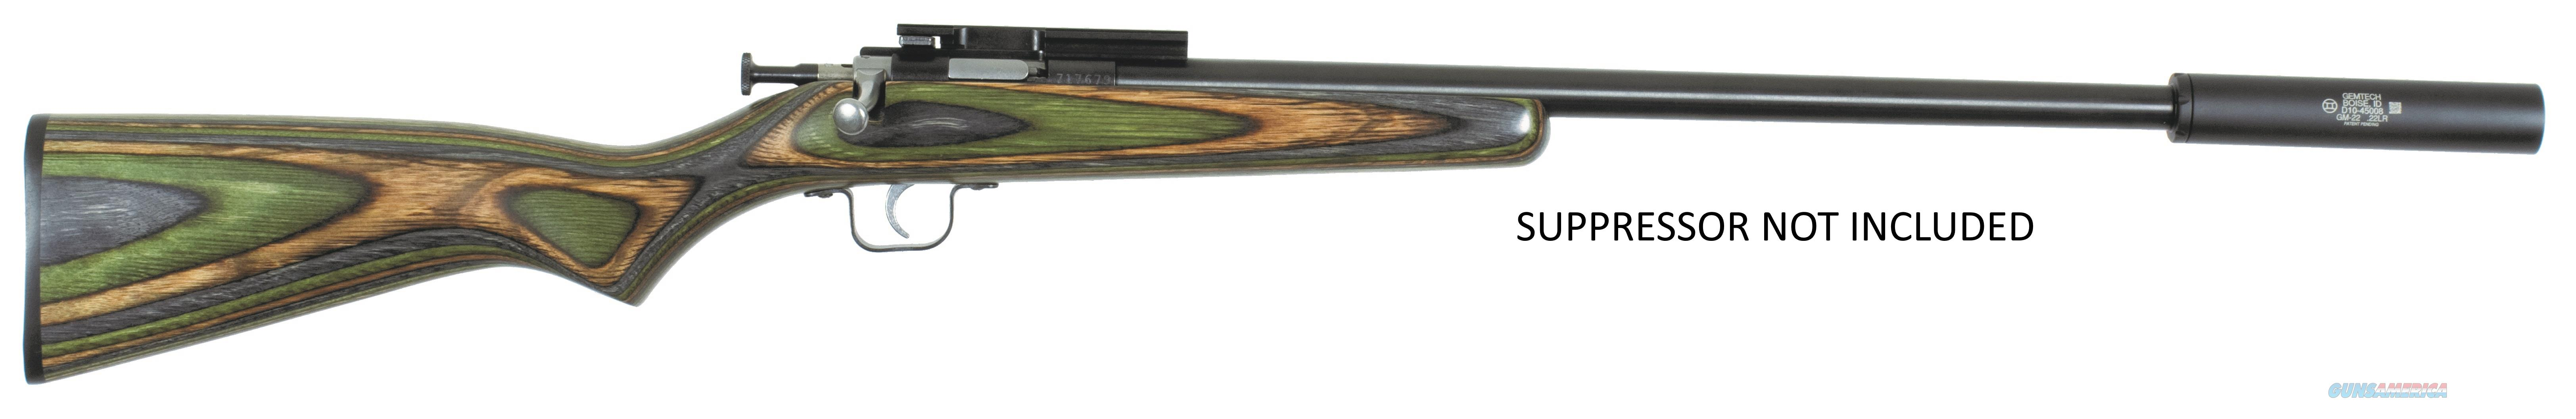 Keystone Sporting Arms CRICKETT 22LR BL/CAMO LAM TB SINGLE-SHOT | THREADED BARREL  Guns > Rifles > K Misc Rifles